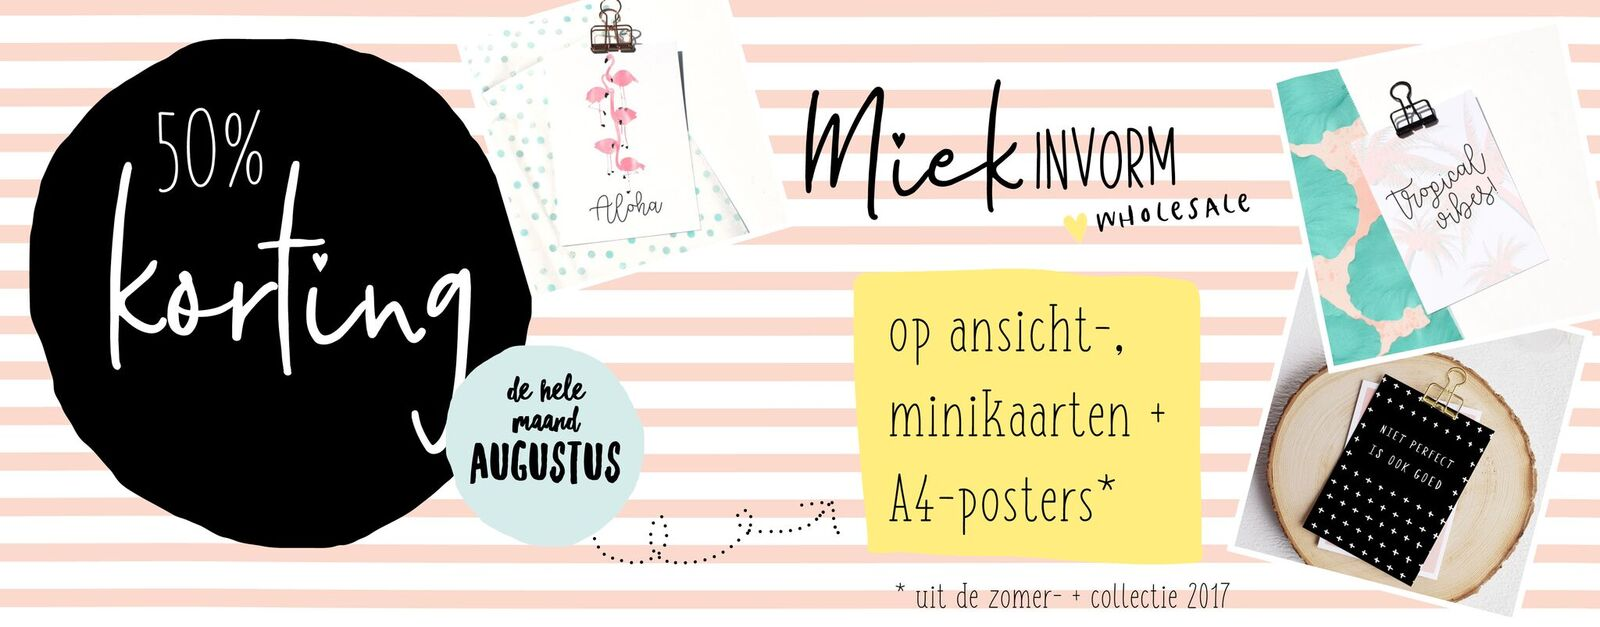 50% korting | Stationery zomercollectie & 2017 collectie | MIEKinvorm Wholesale